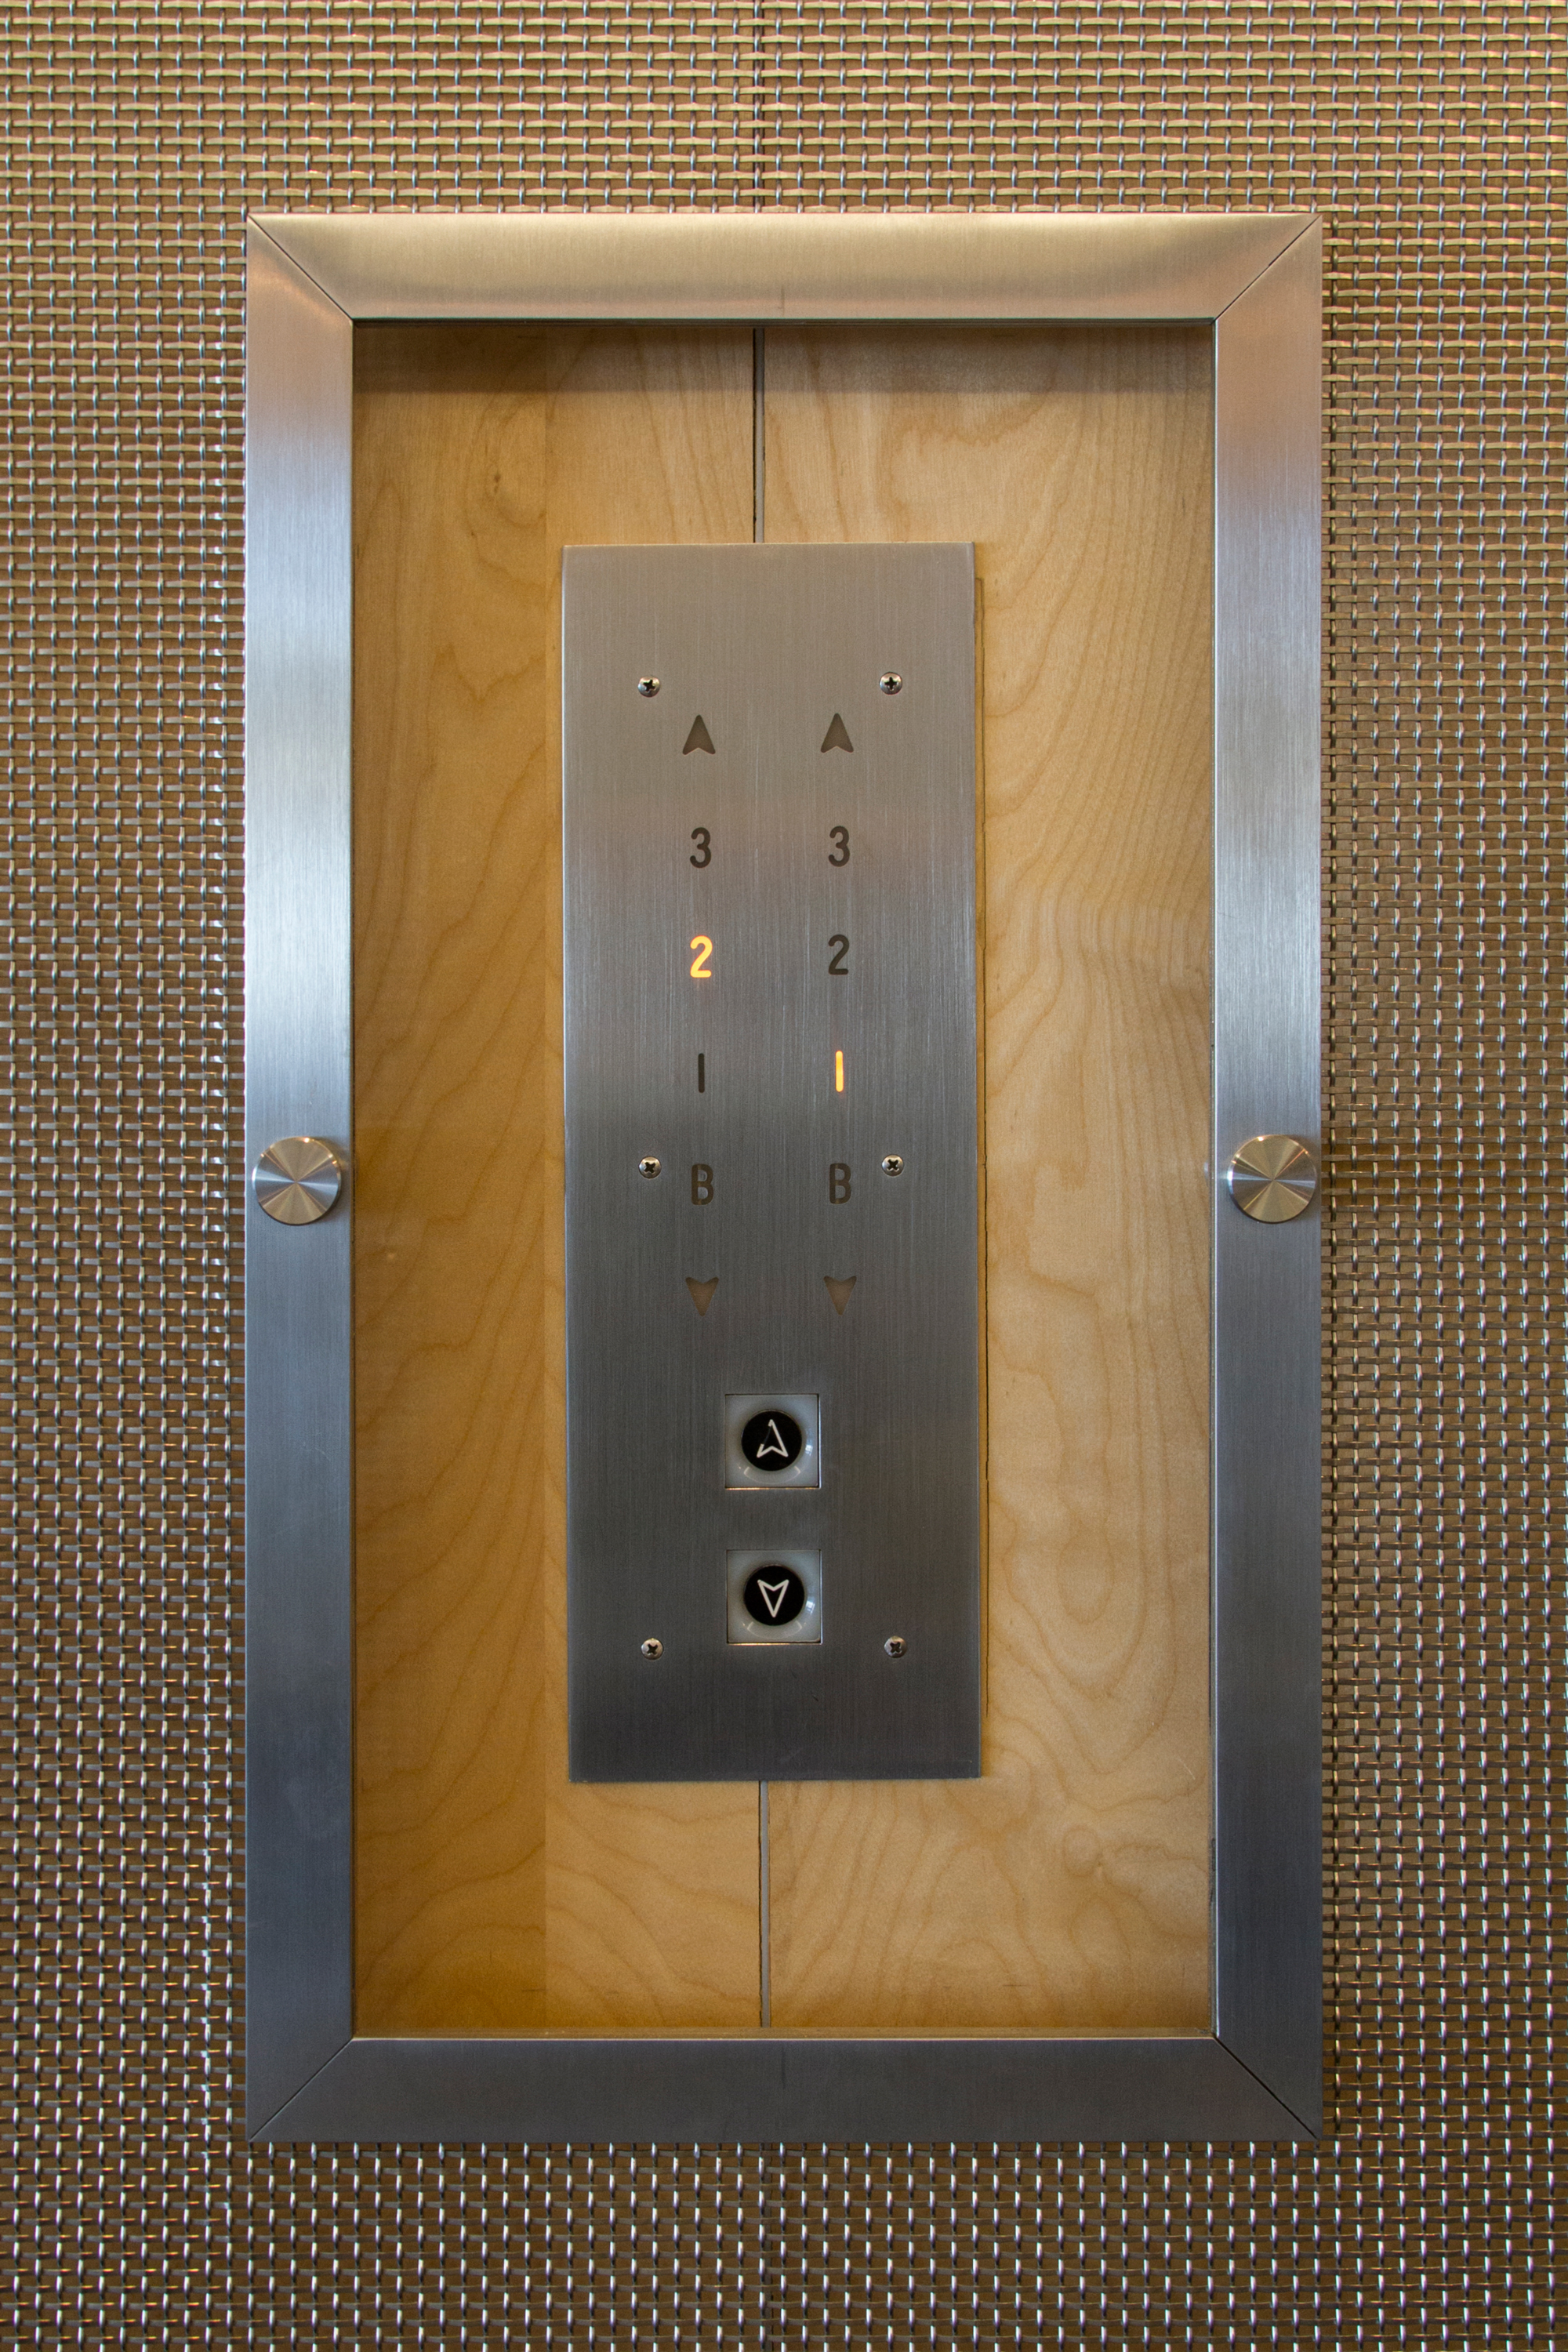 Five panels were created, one of which has a cut out to provide access to the elevator buttons.